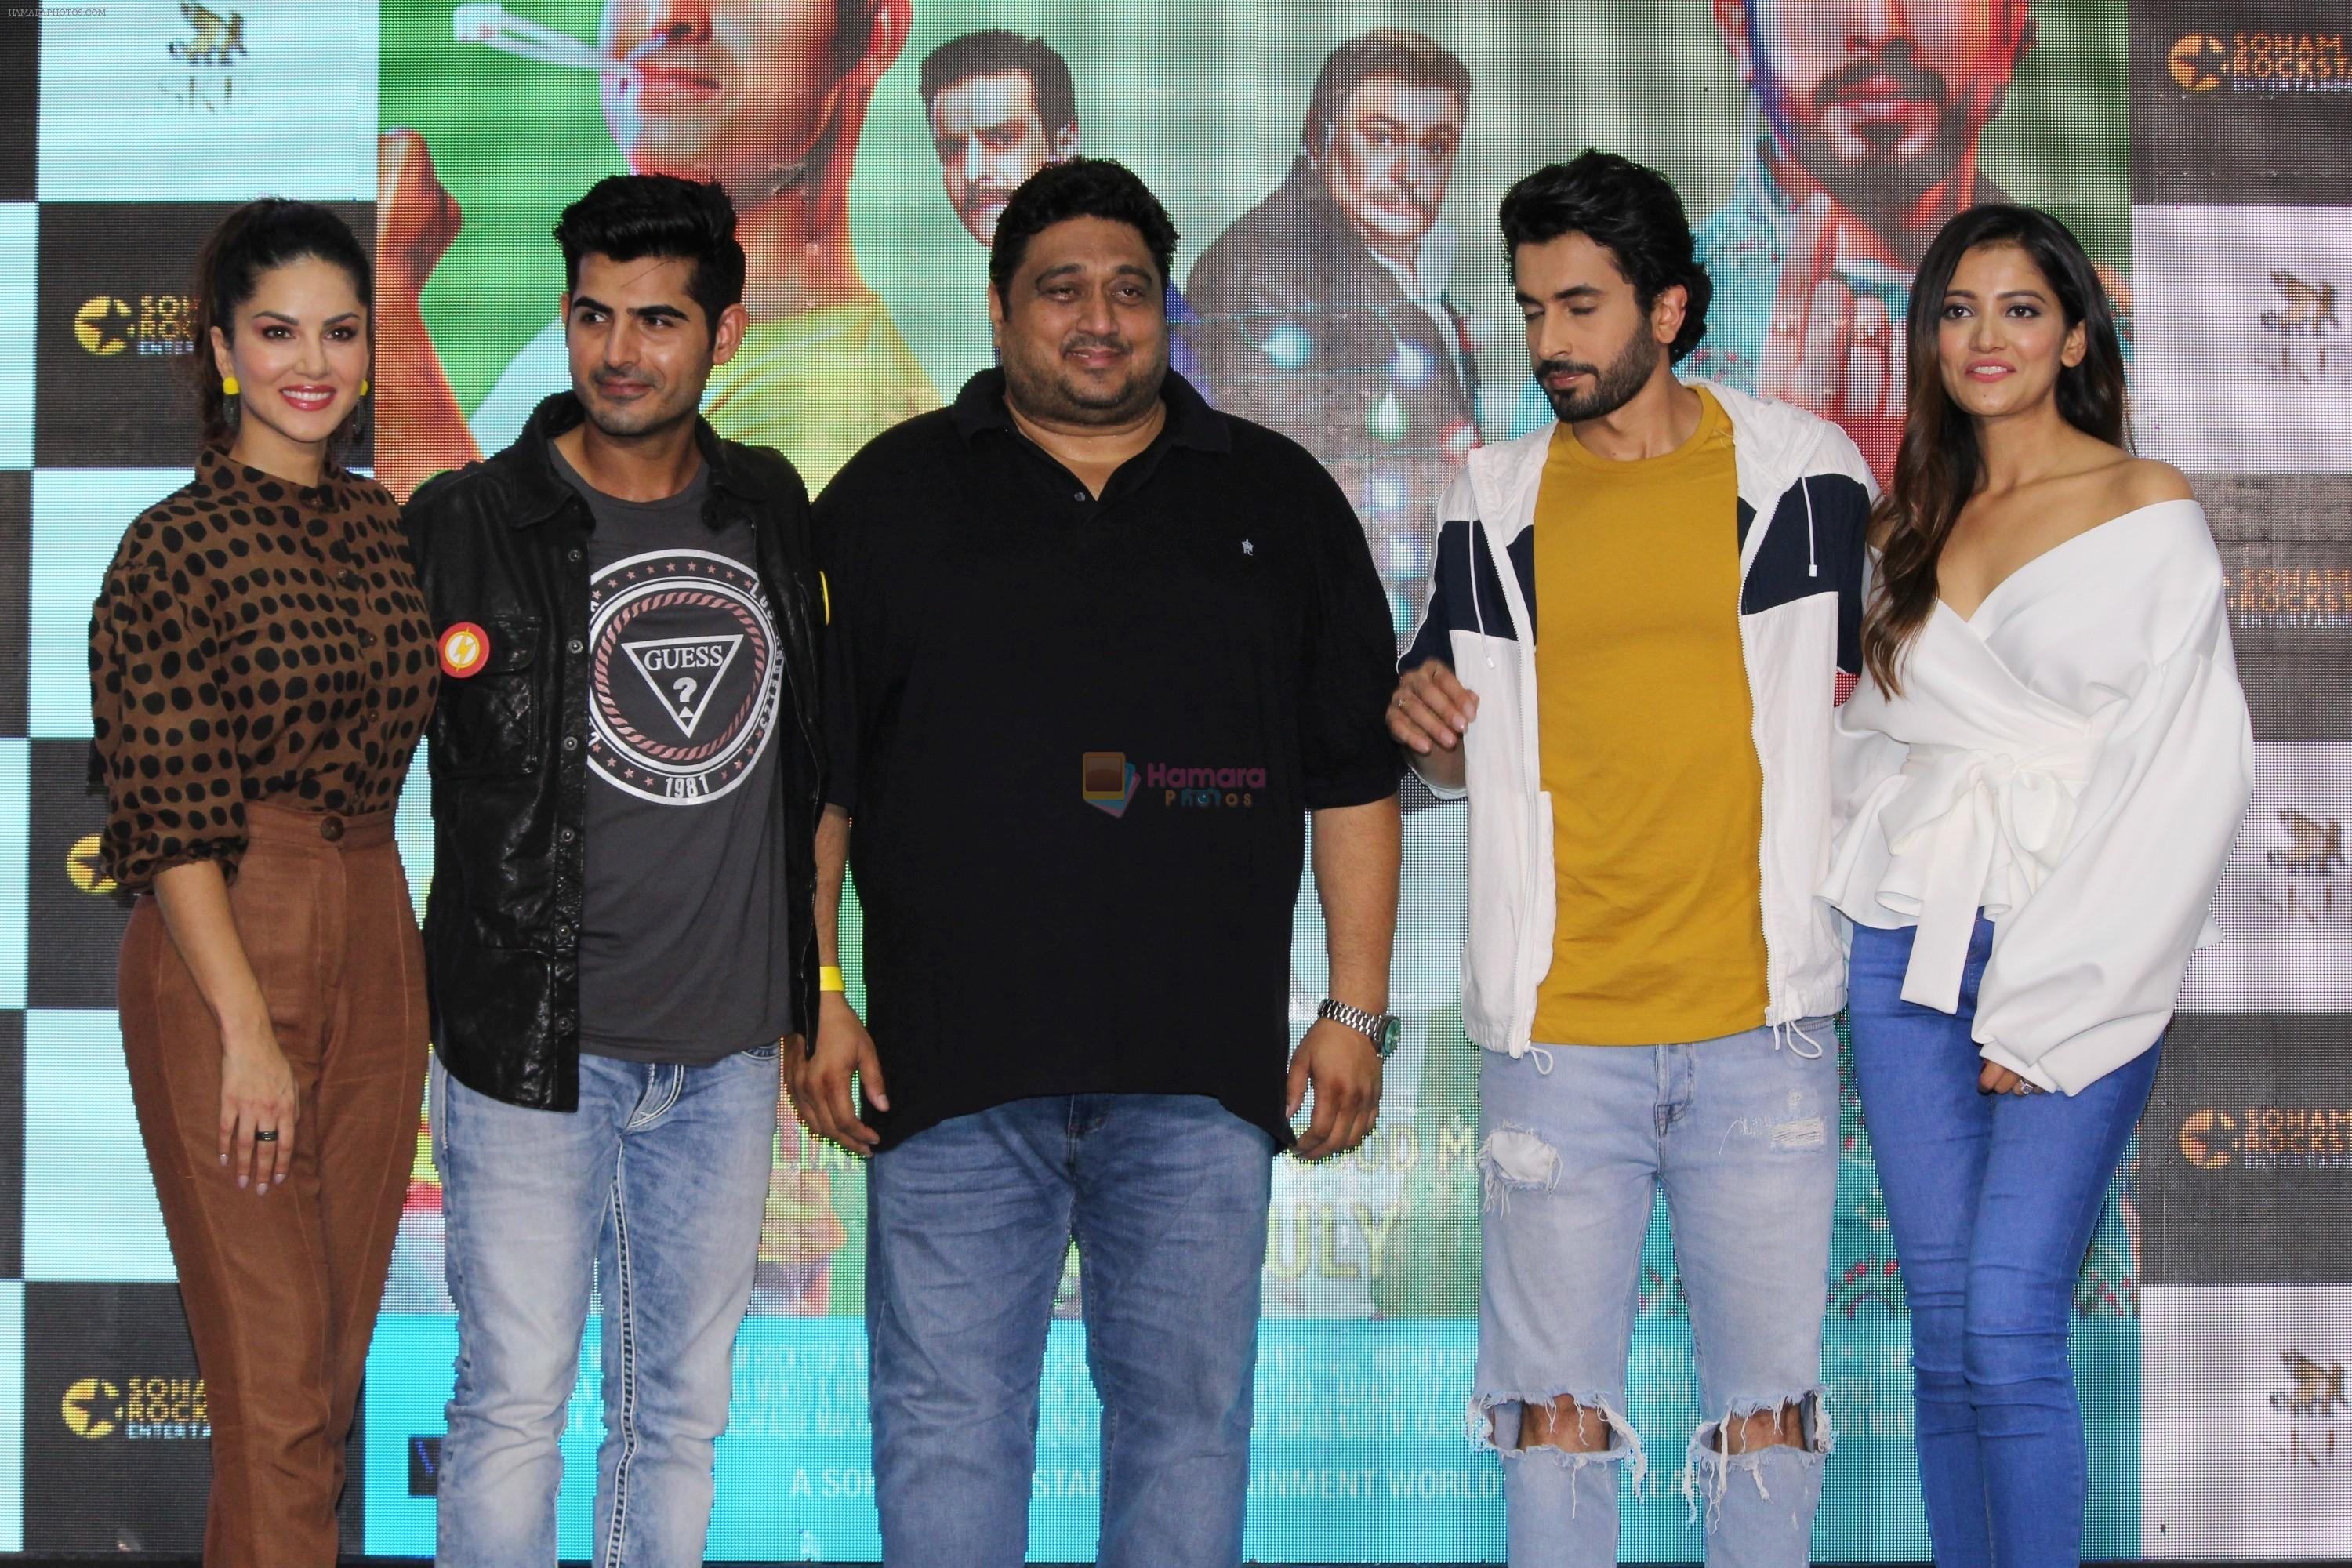 Sunny Leone, Sunny Singh Nijjar, Omkar Kapoor, Smeep Kang at the Song Launch Funk Love from movie Jhootha Kahin Ka on 11th July 2019